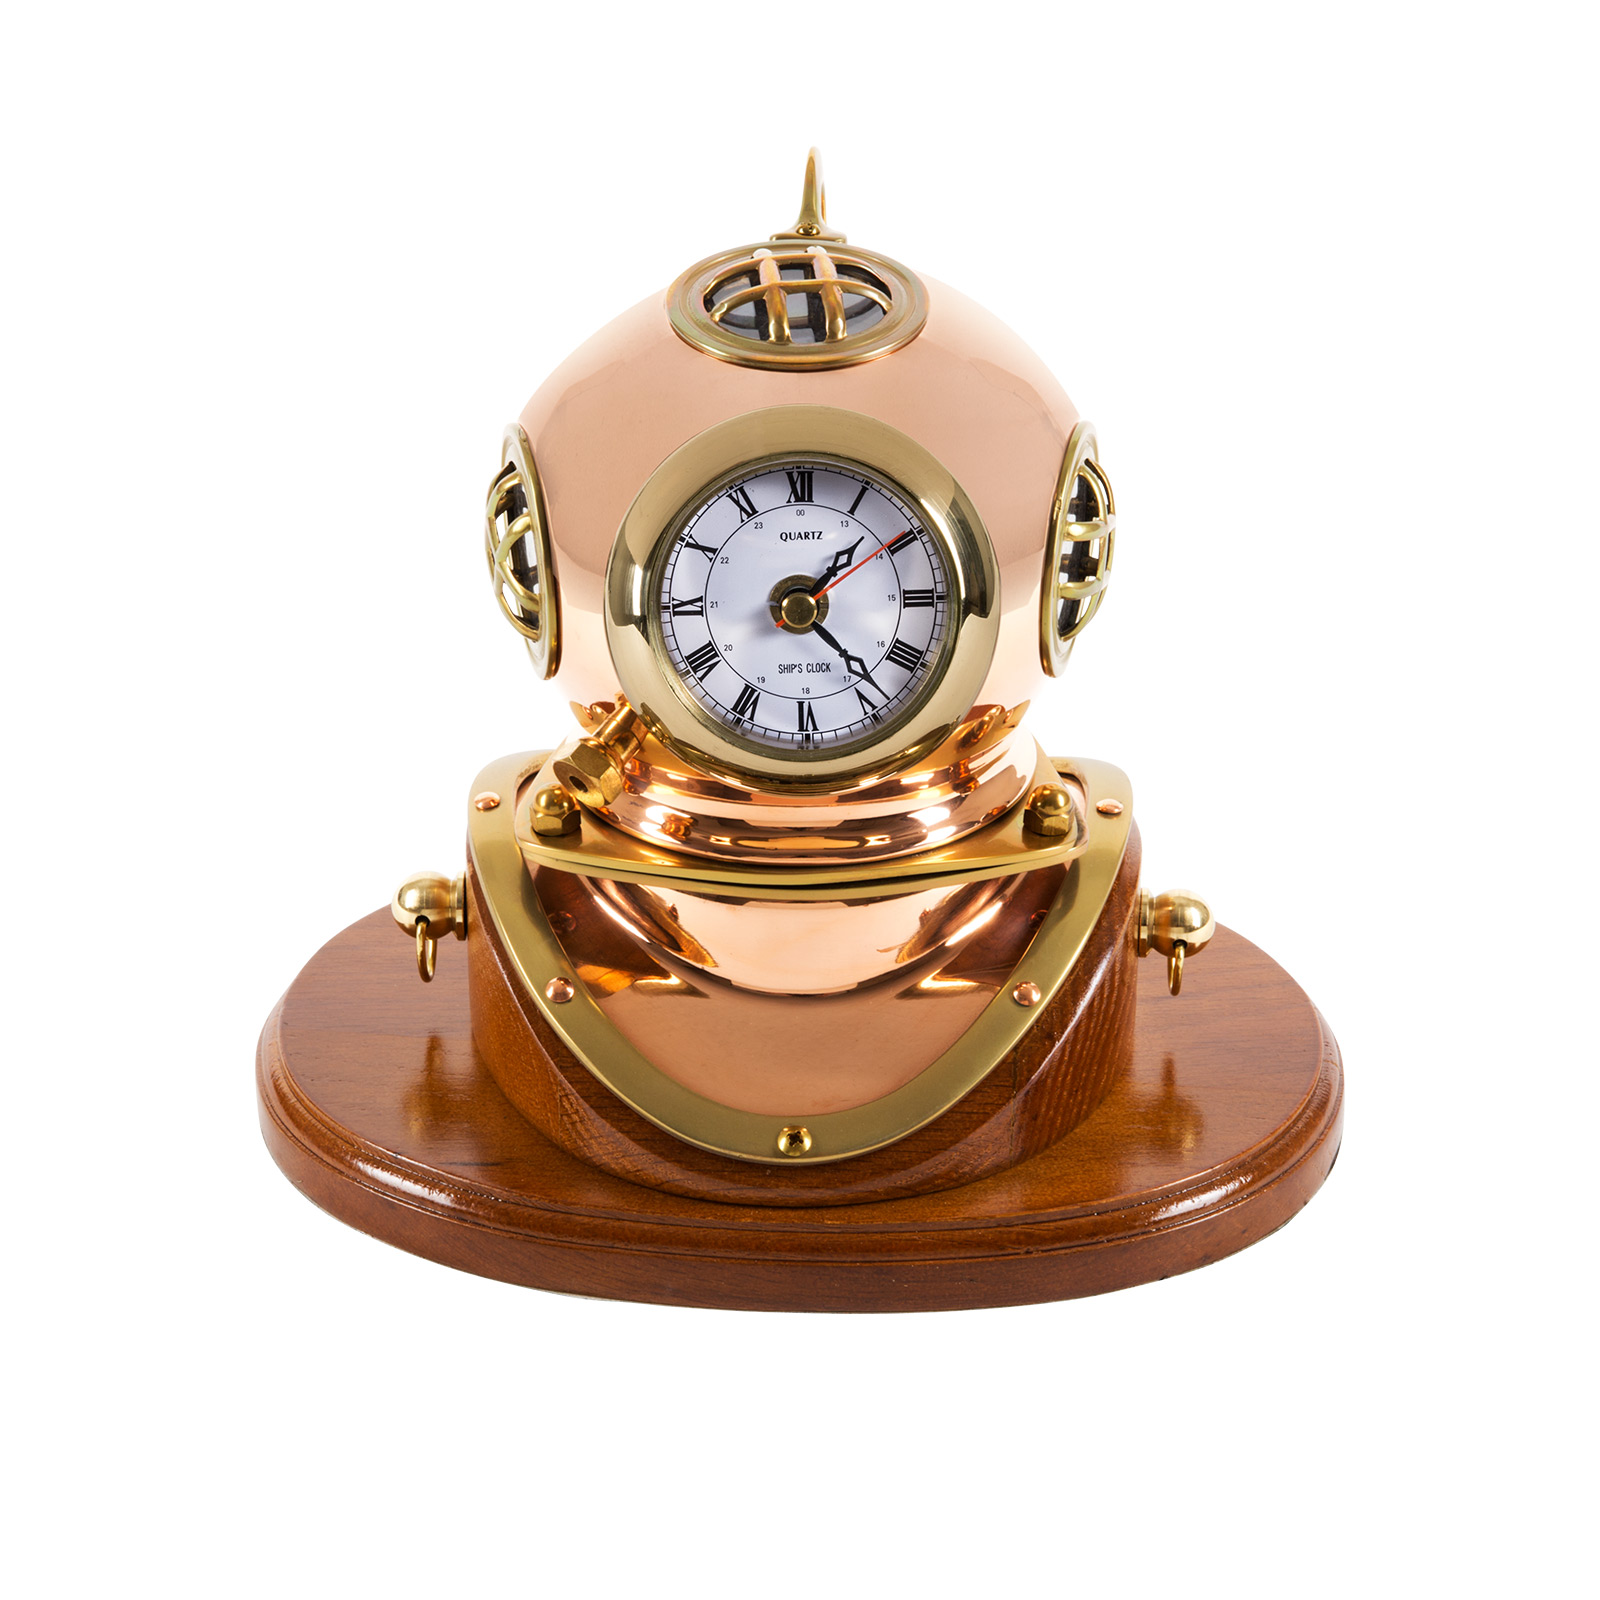 Dive Helmet Replica with Quartz Clock